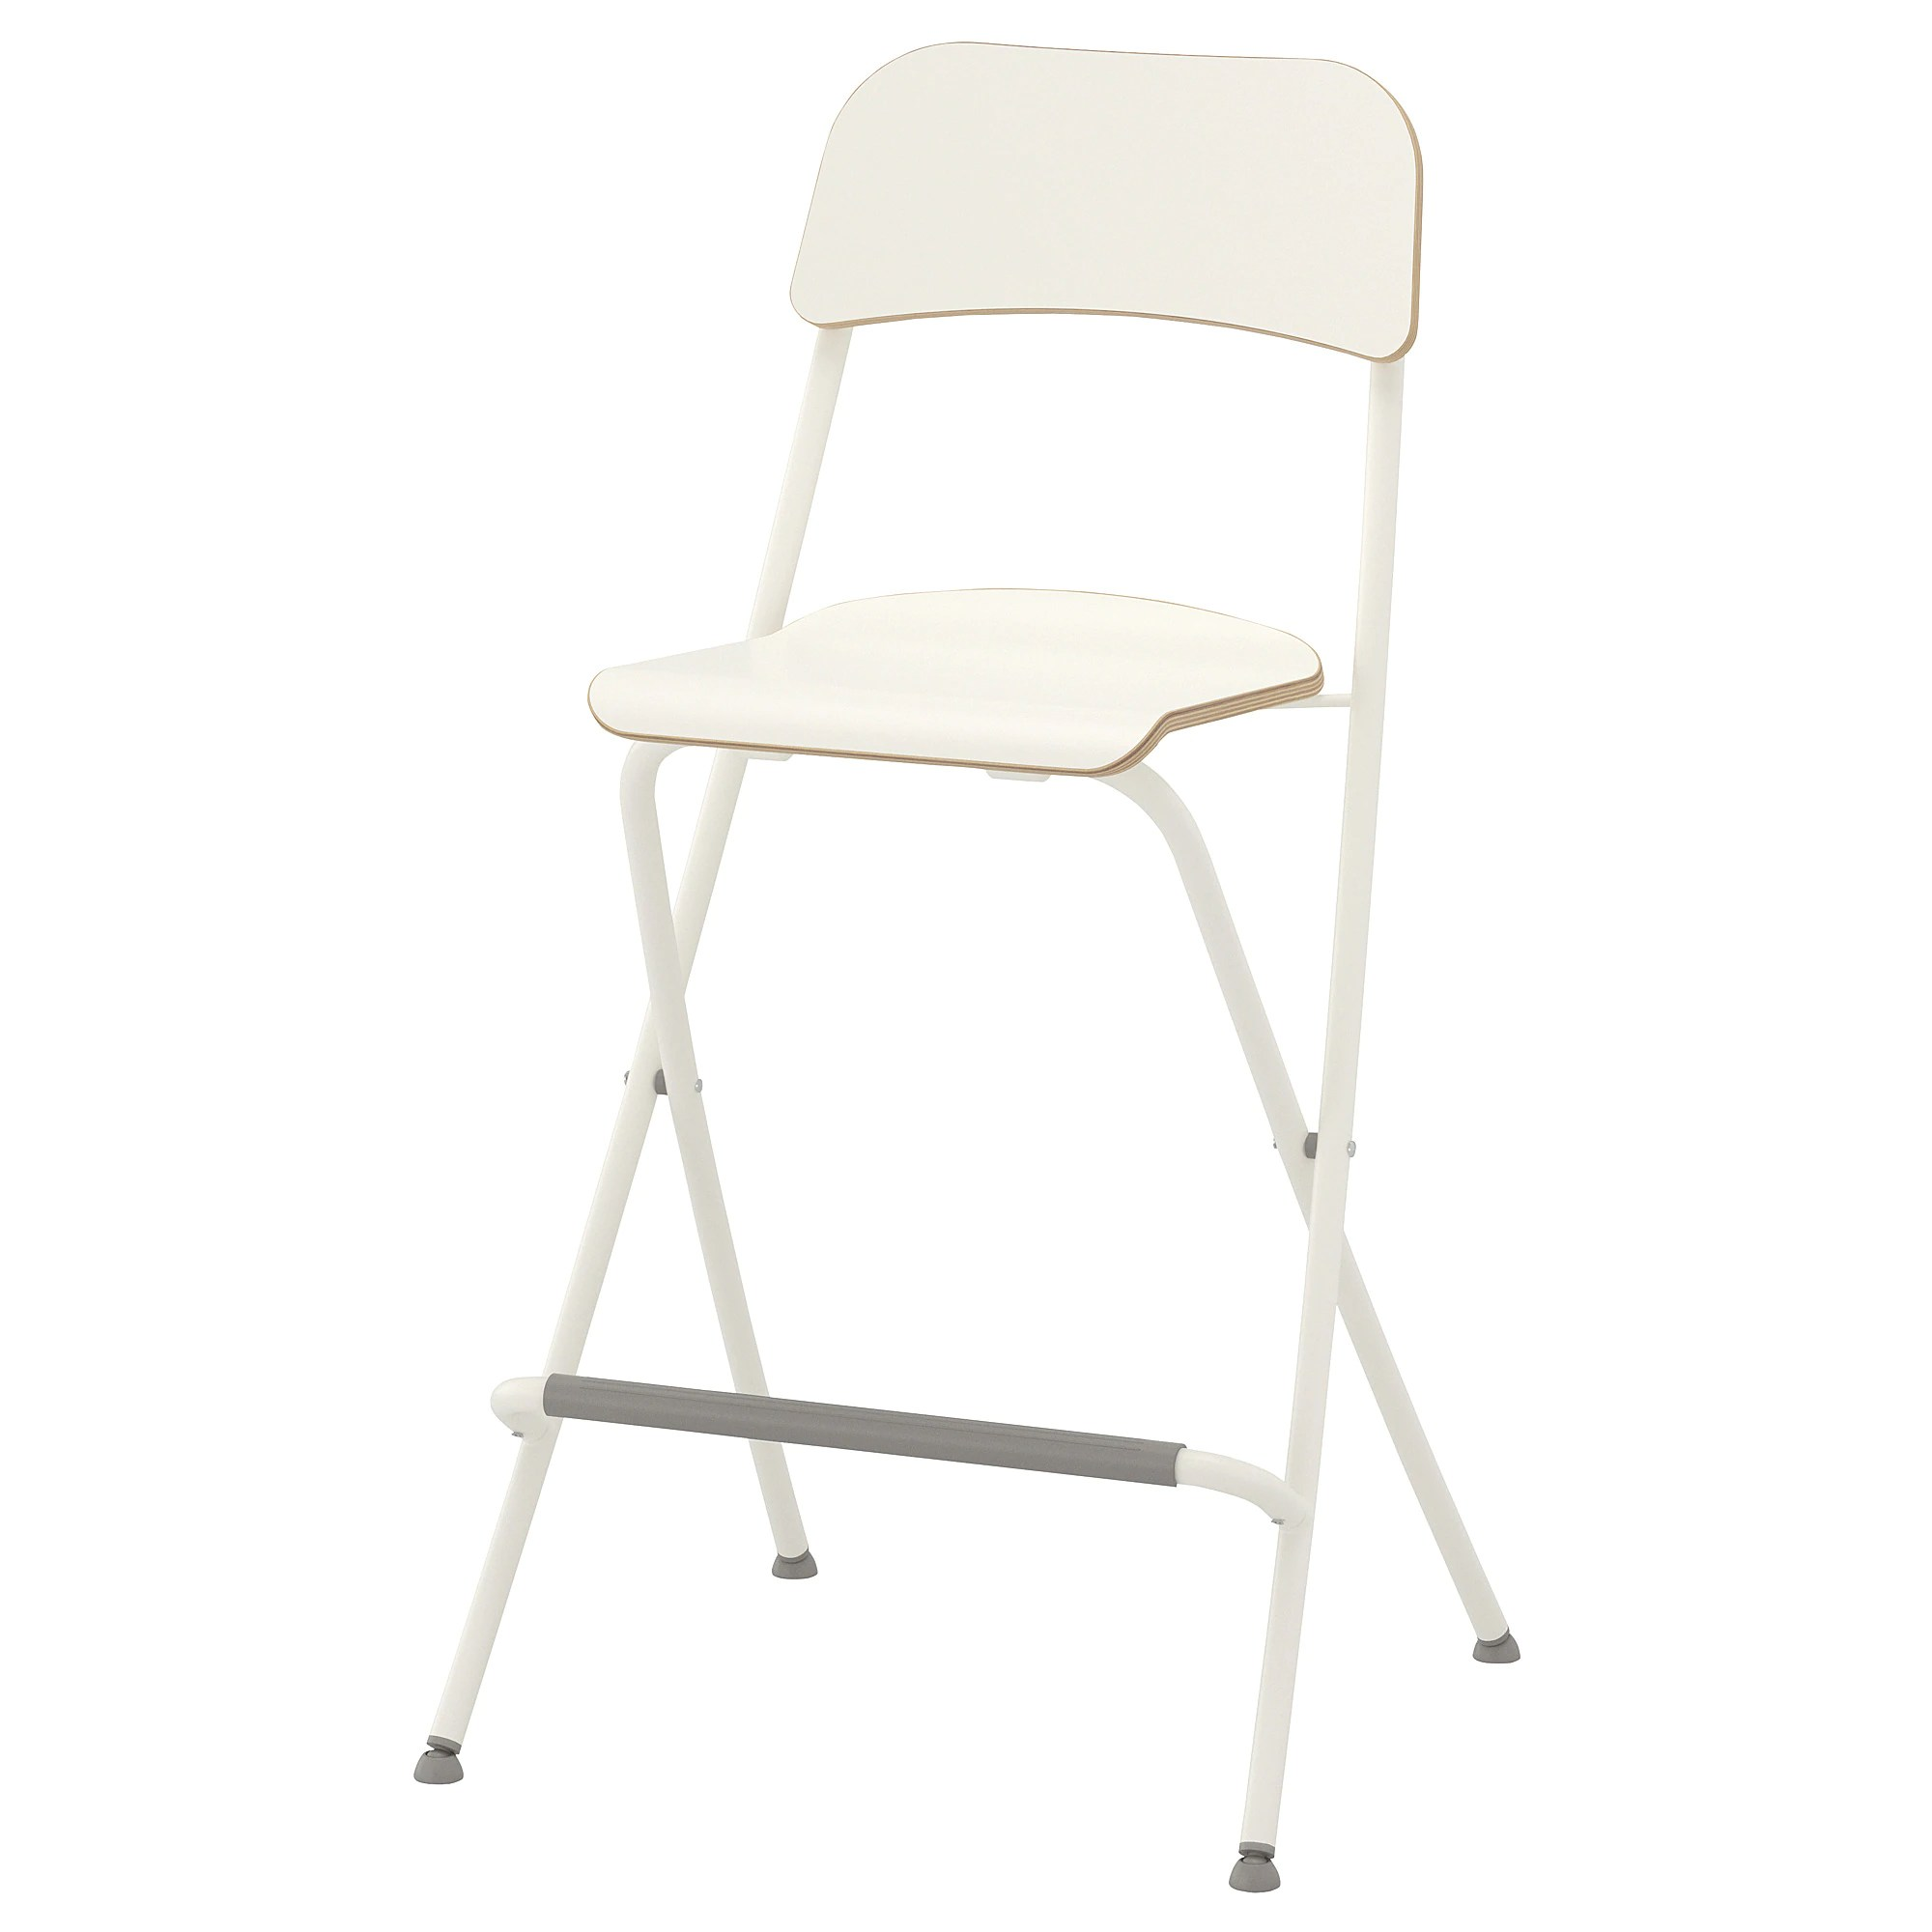 Stool Chair Franklin Bar Stool With Backrest Foldable White White